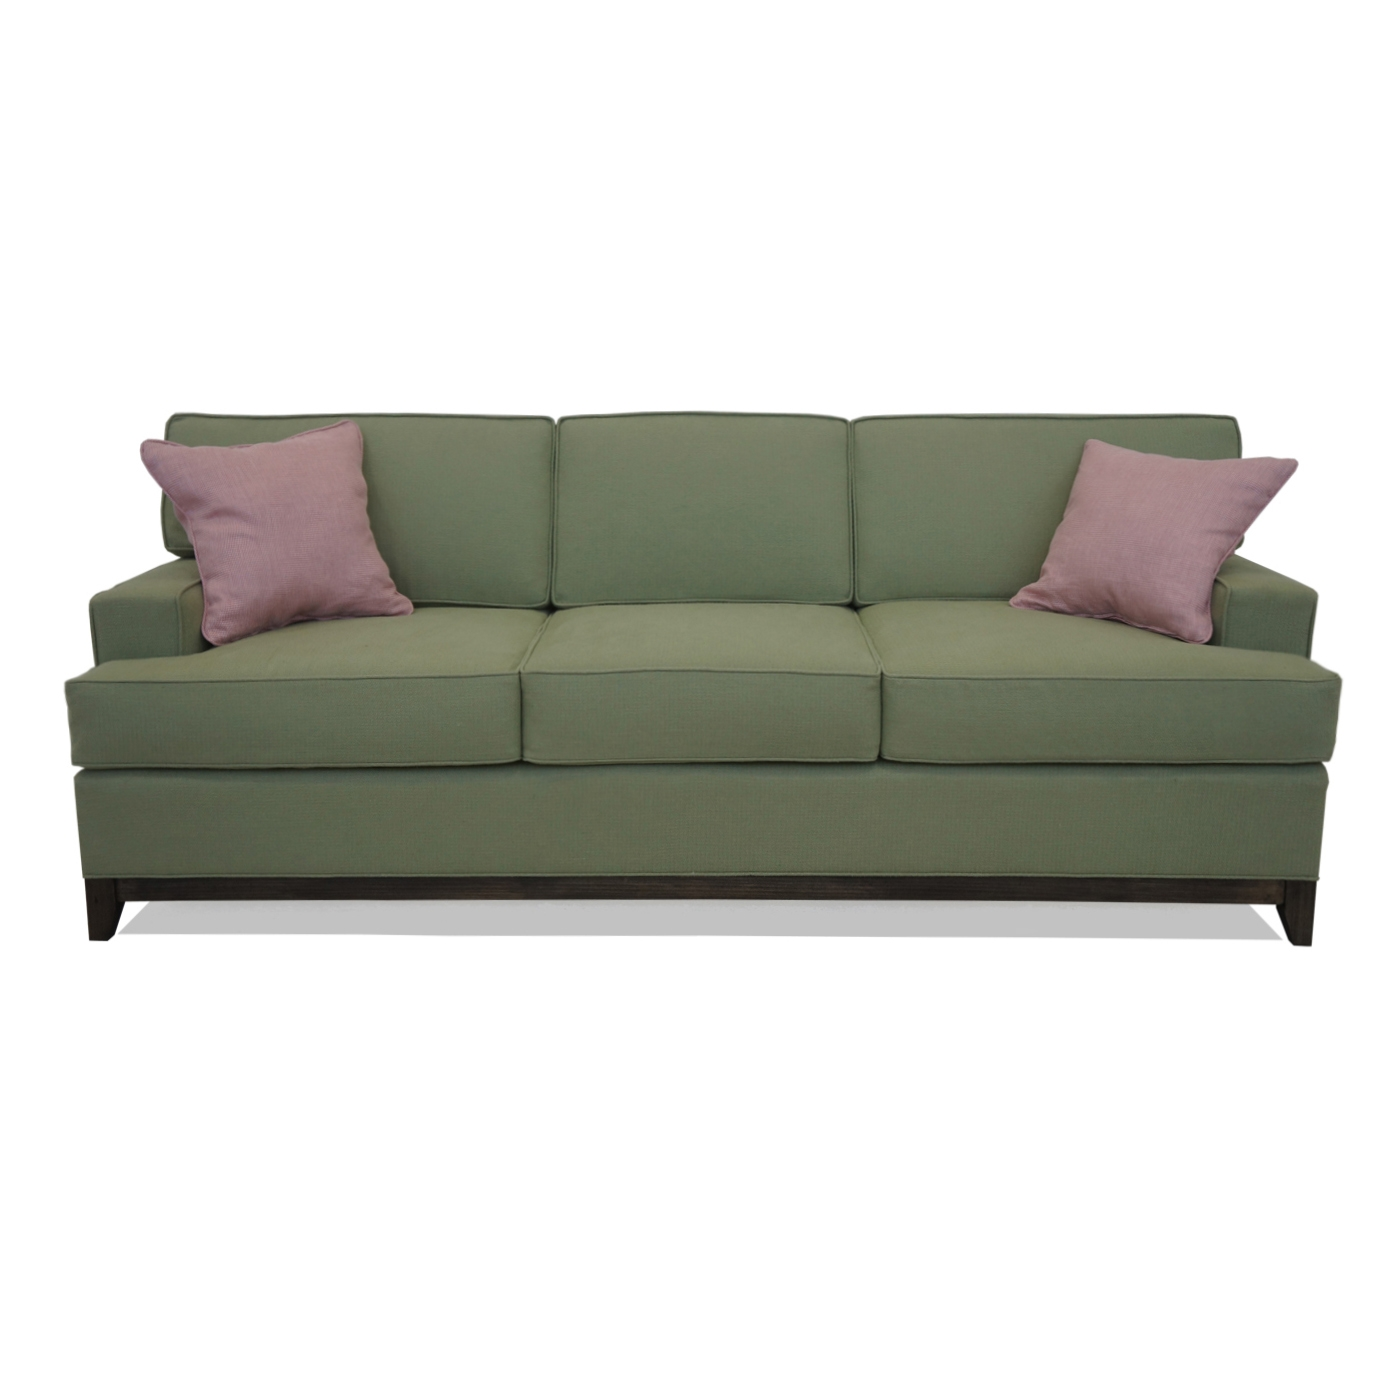 Best place to buy sofa for Best place to find furniture